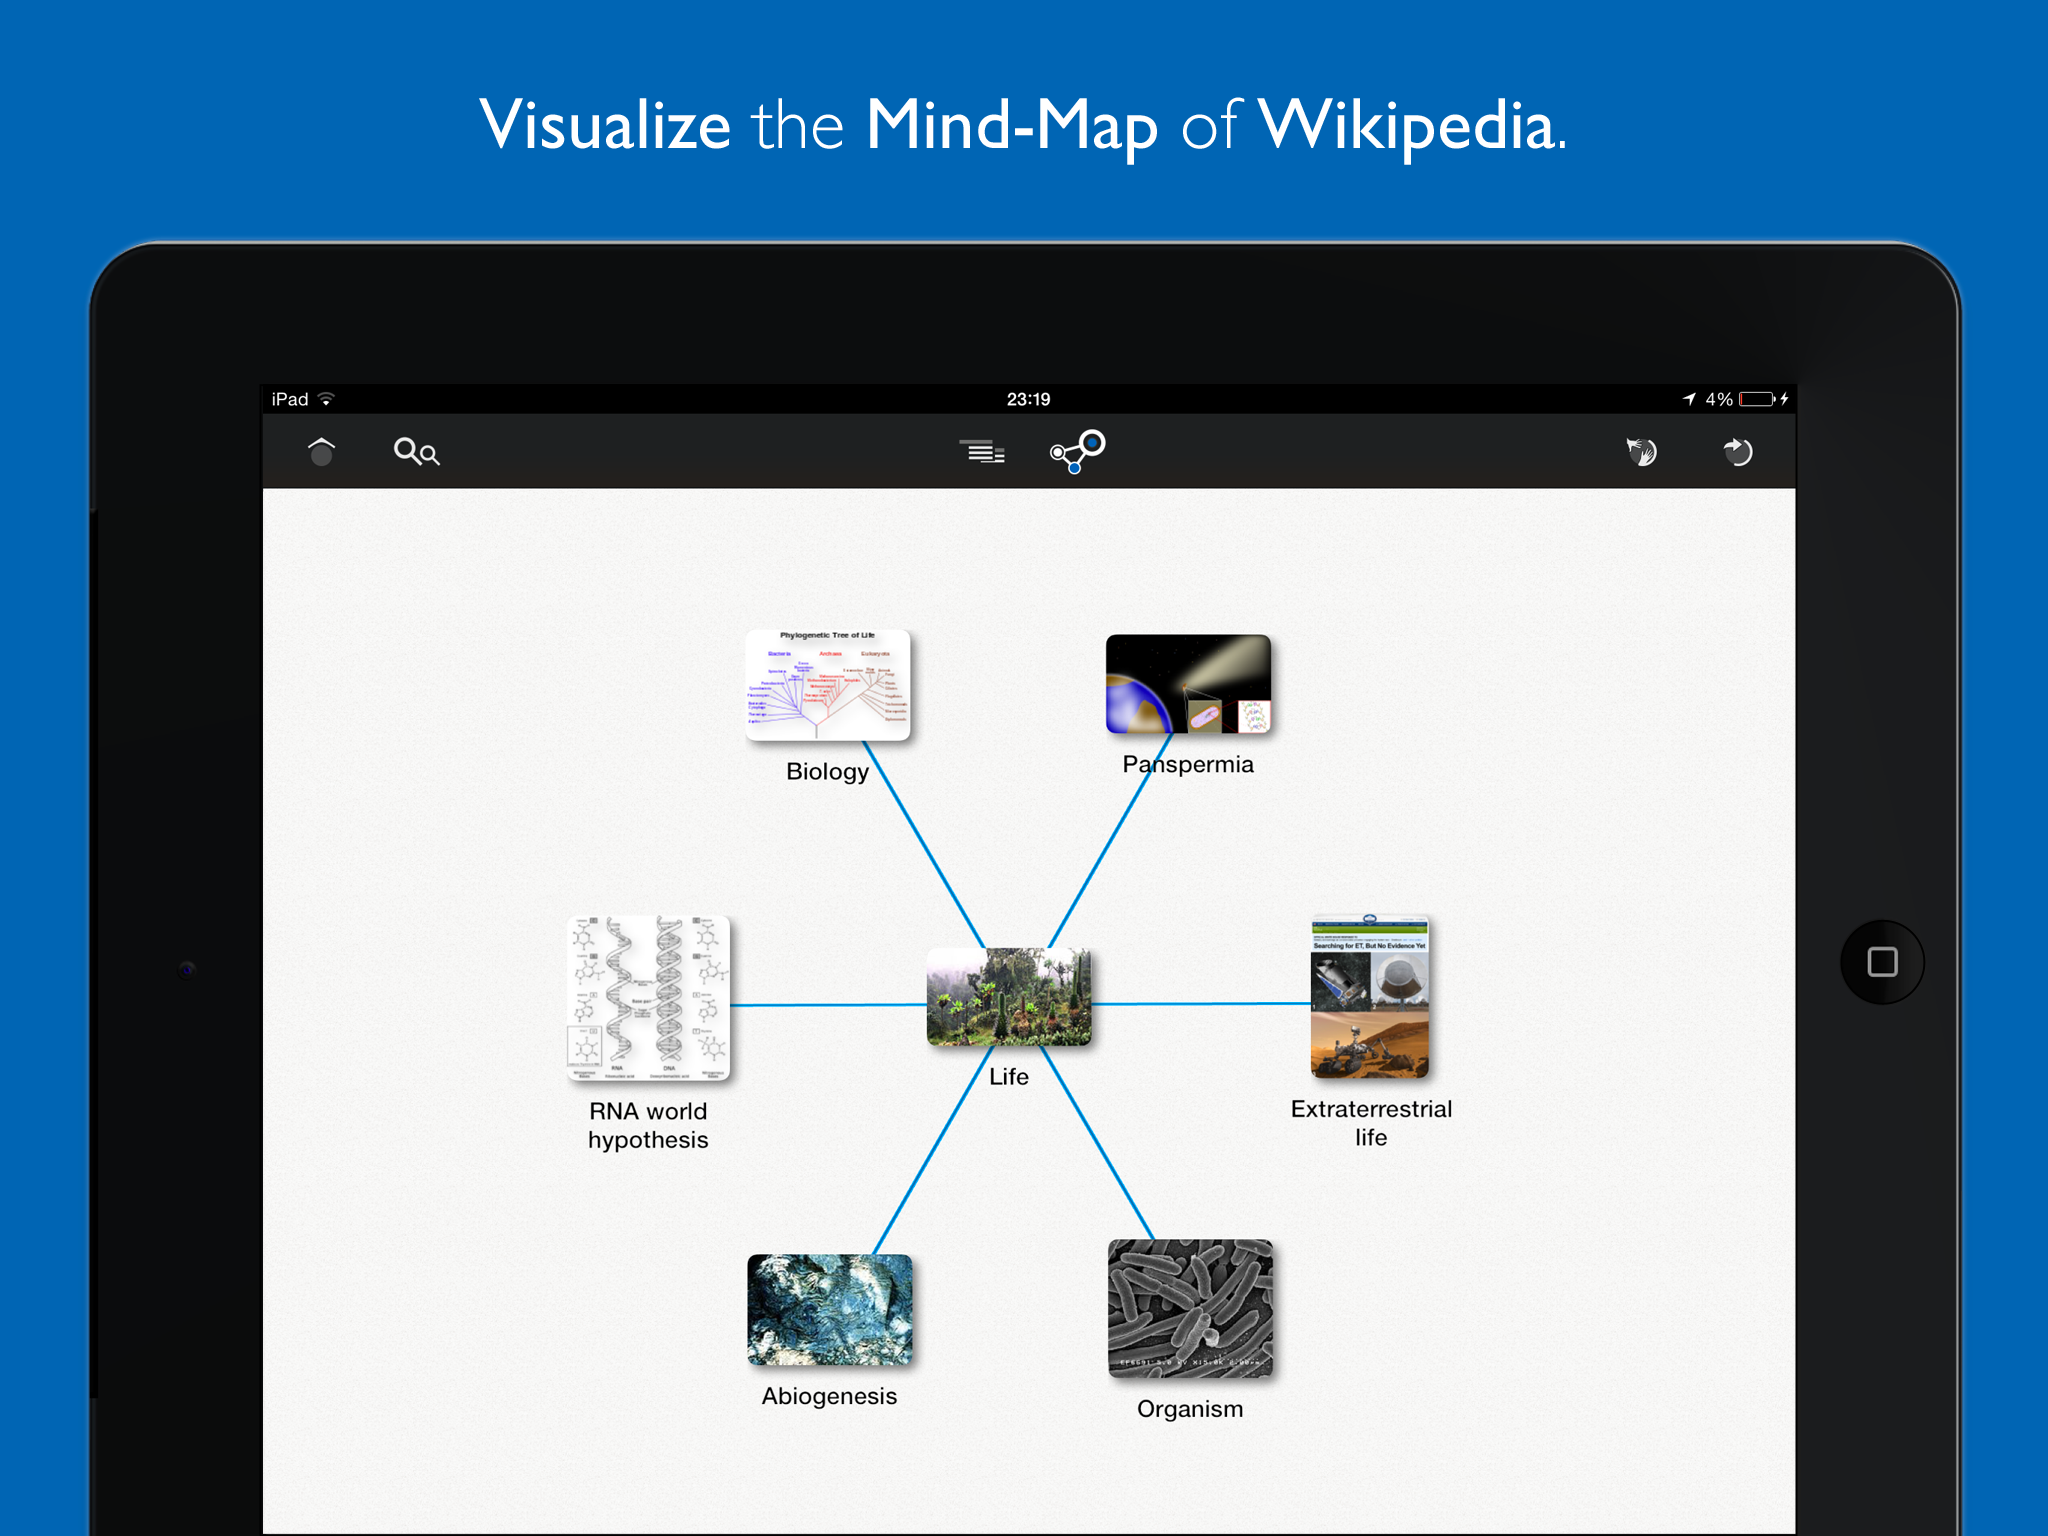 LearnDiscovery – Mindmap of Wikipedia